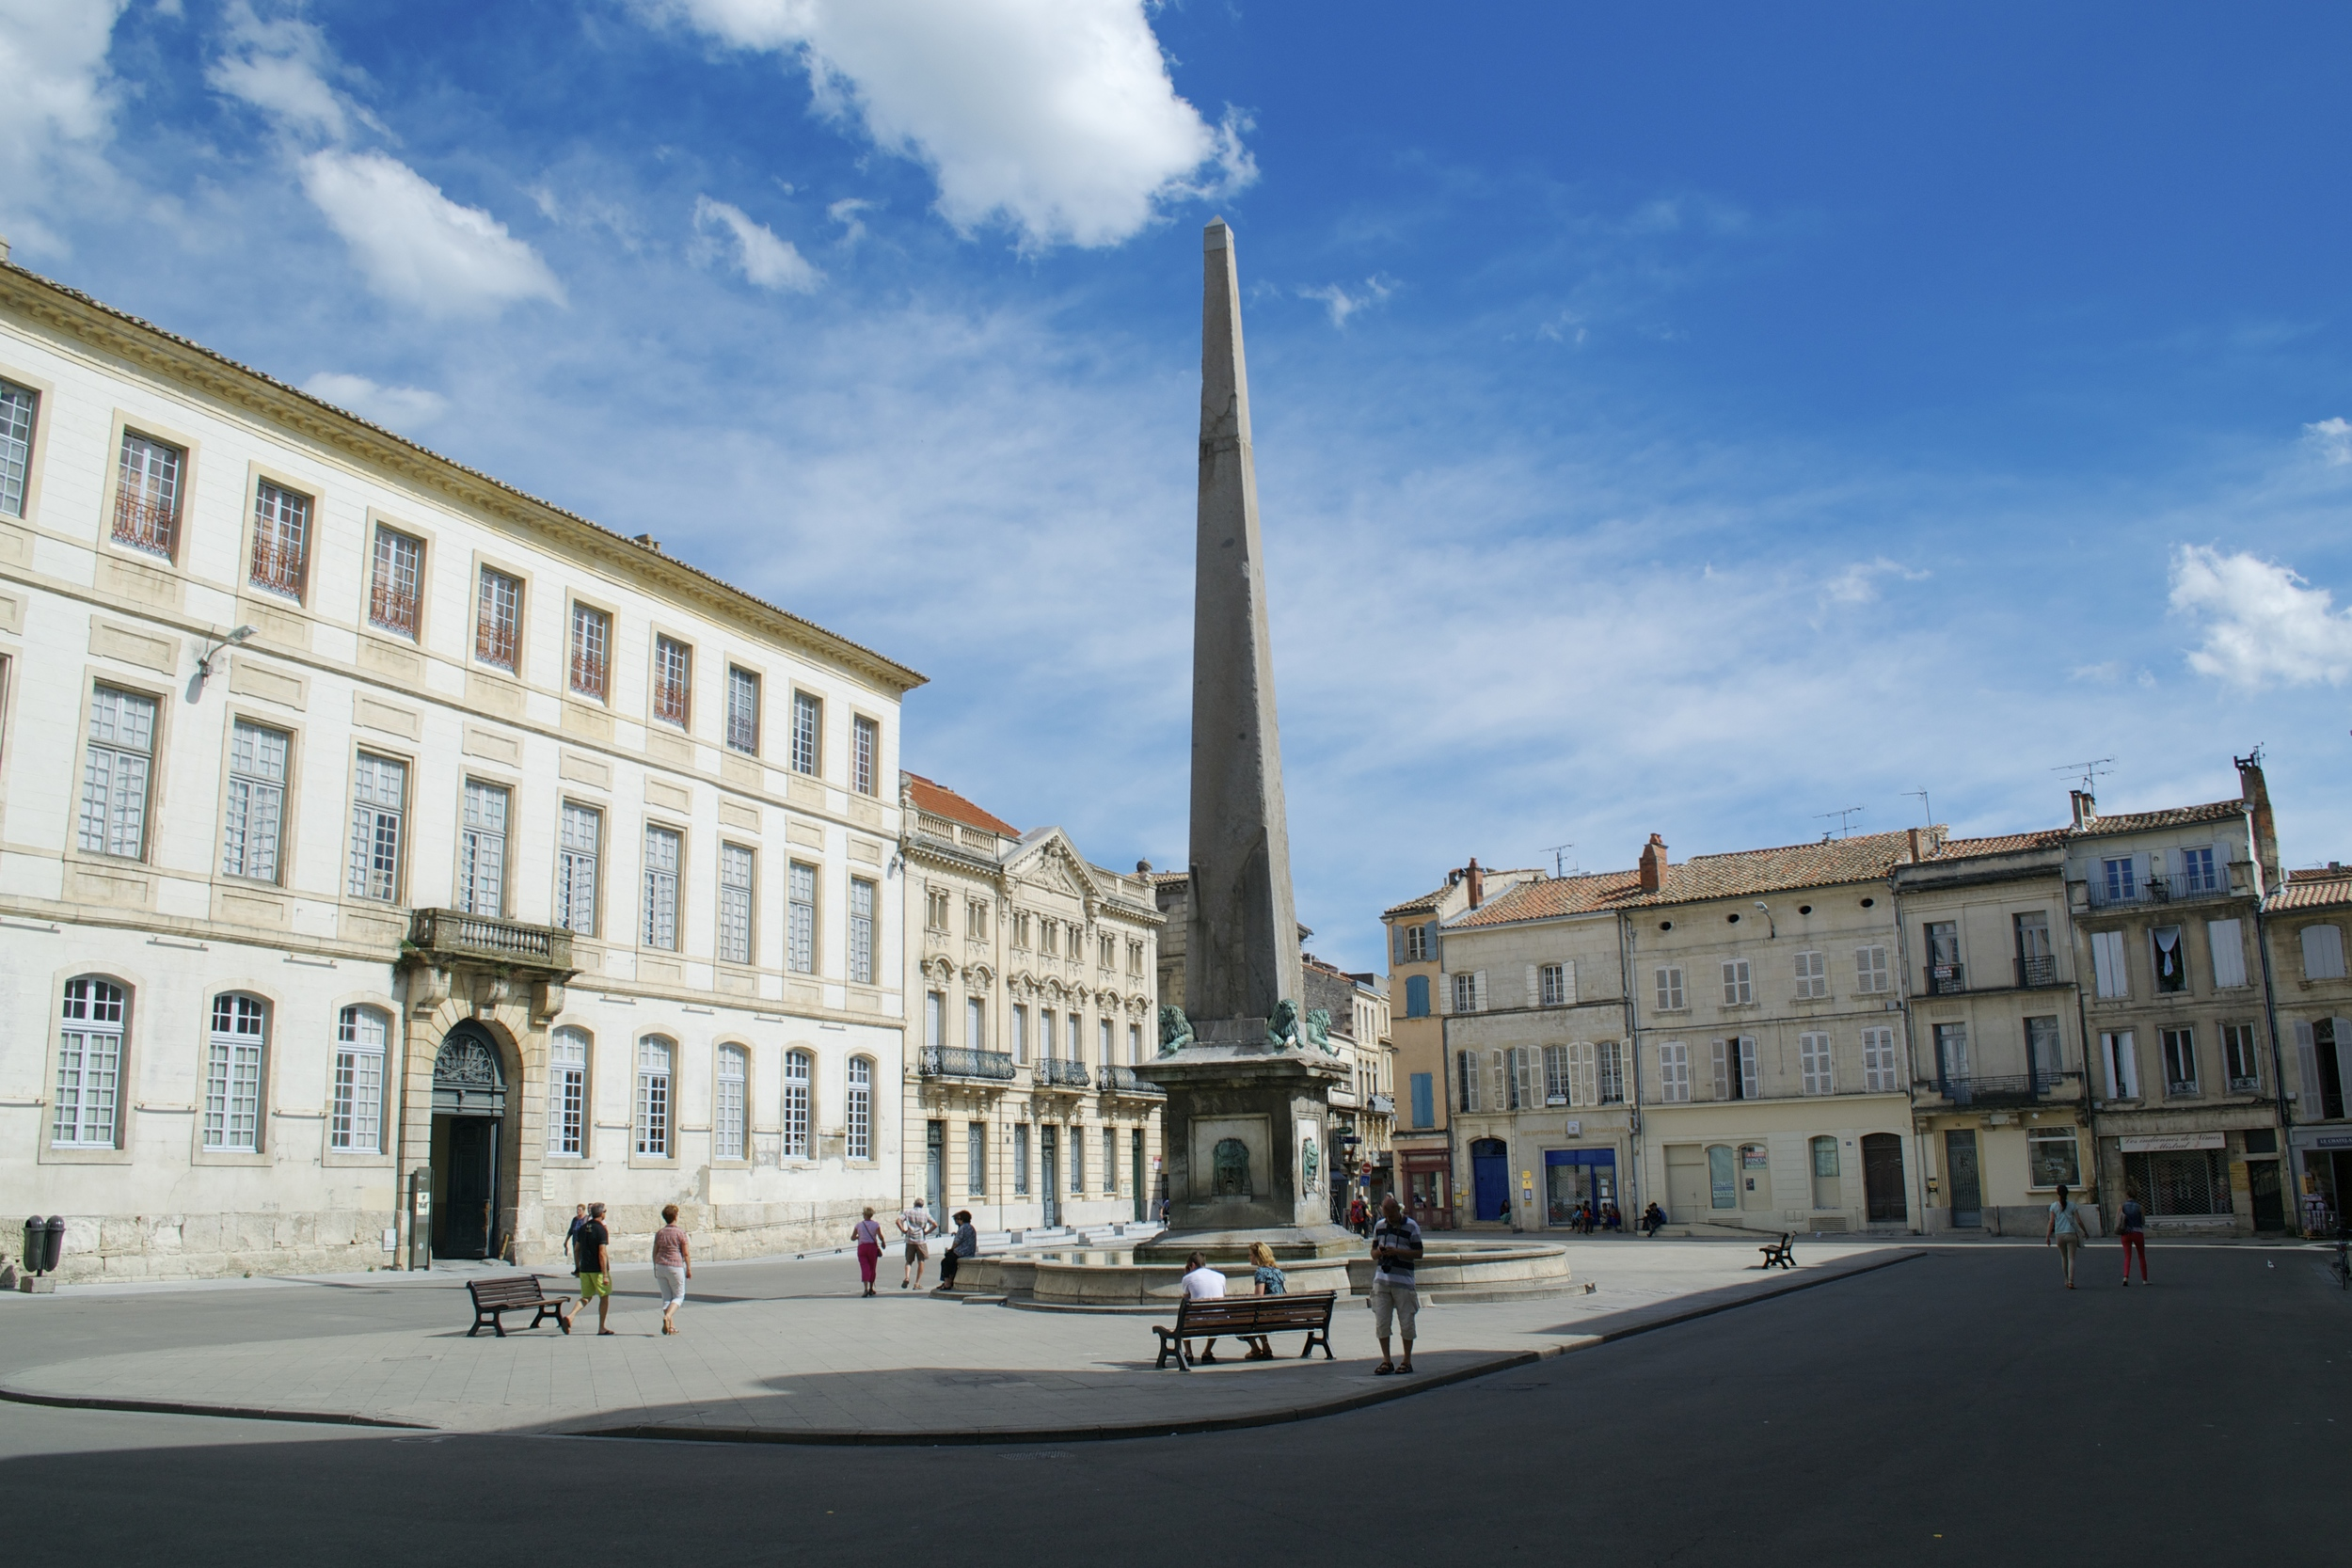 A quiet little square in Arles.